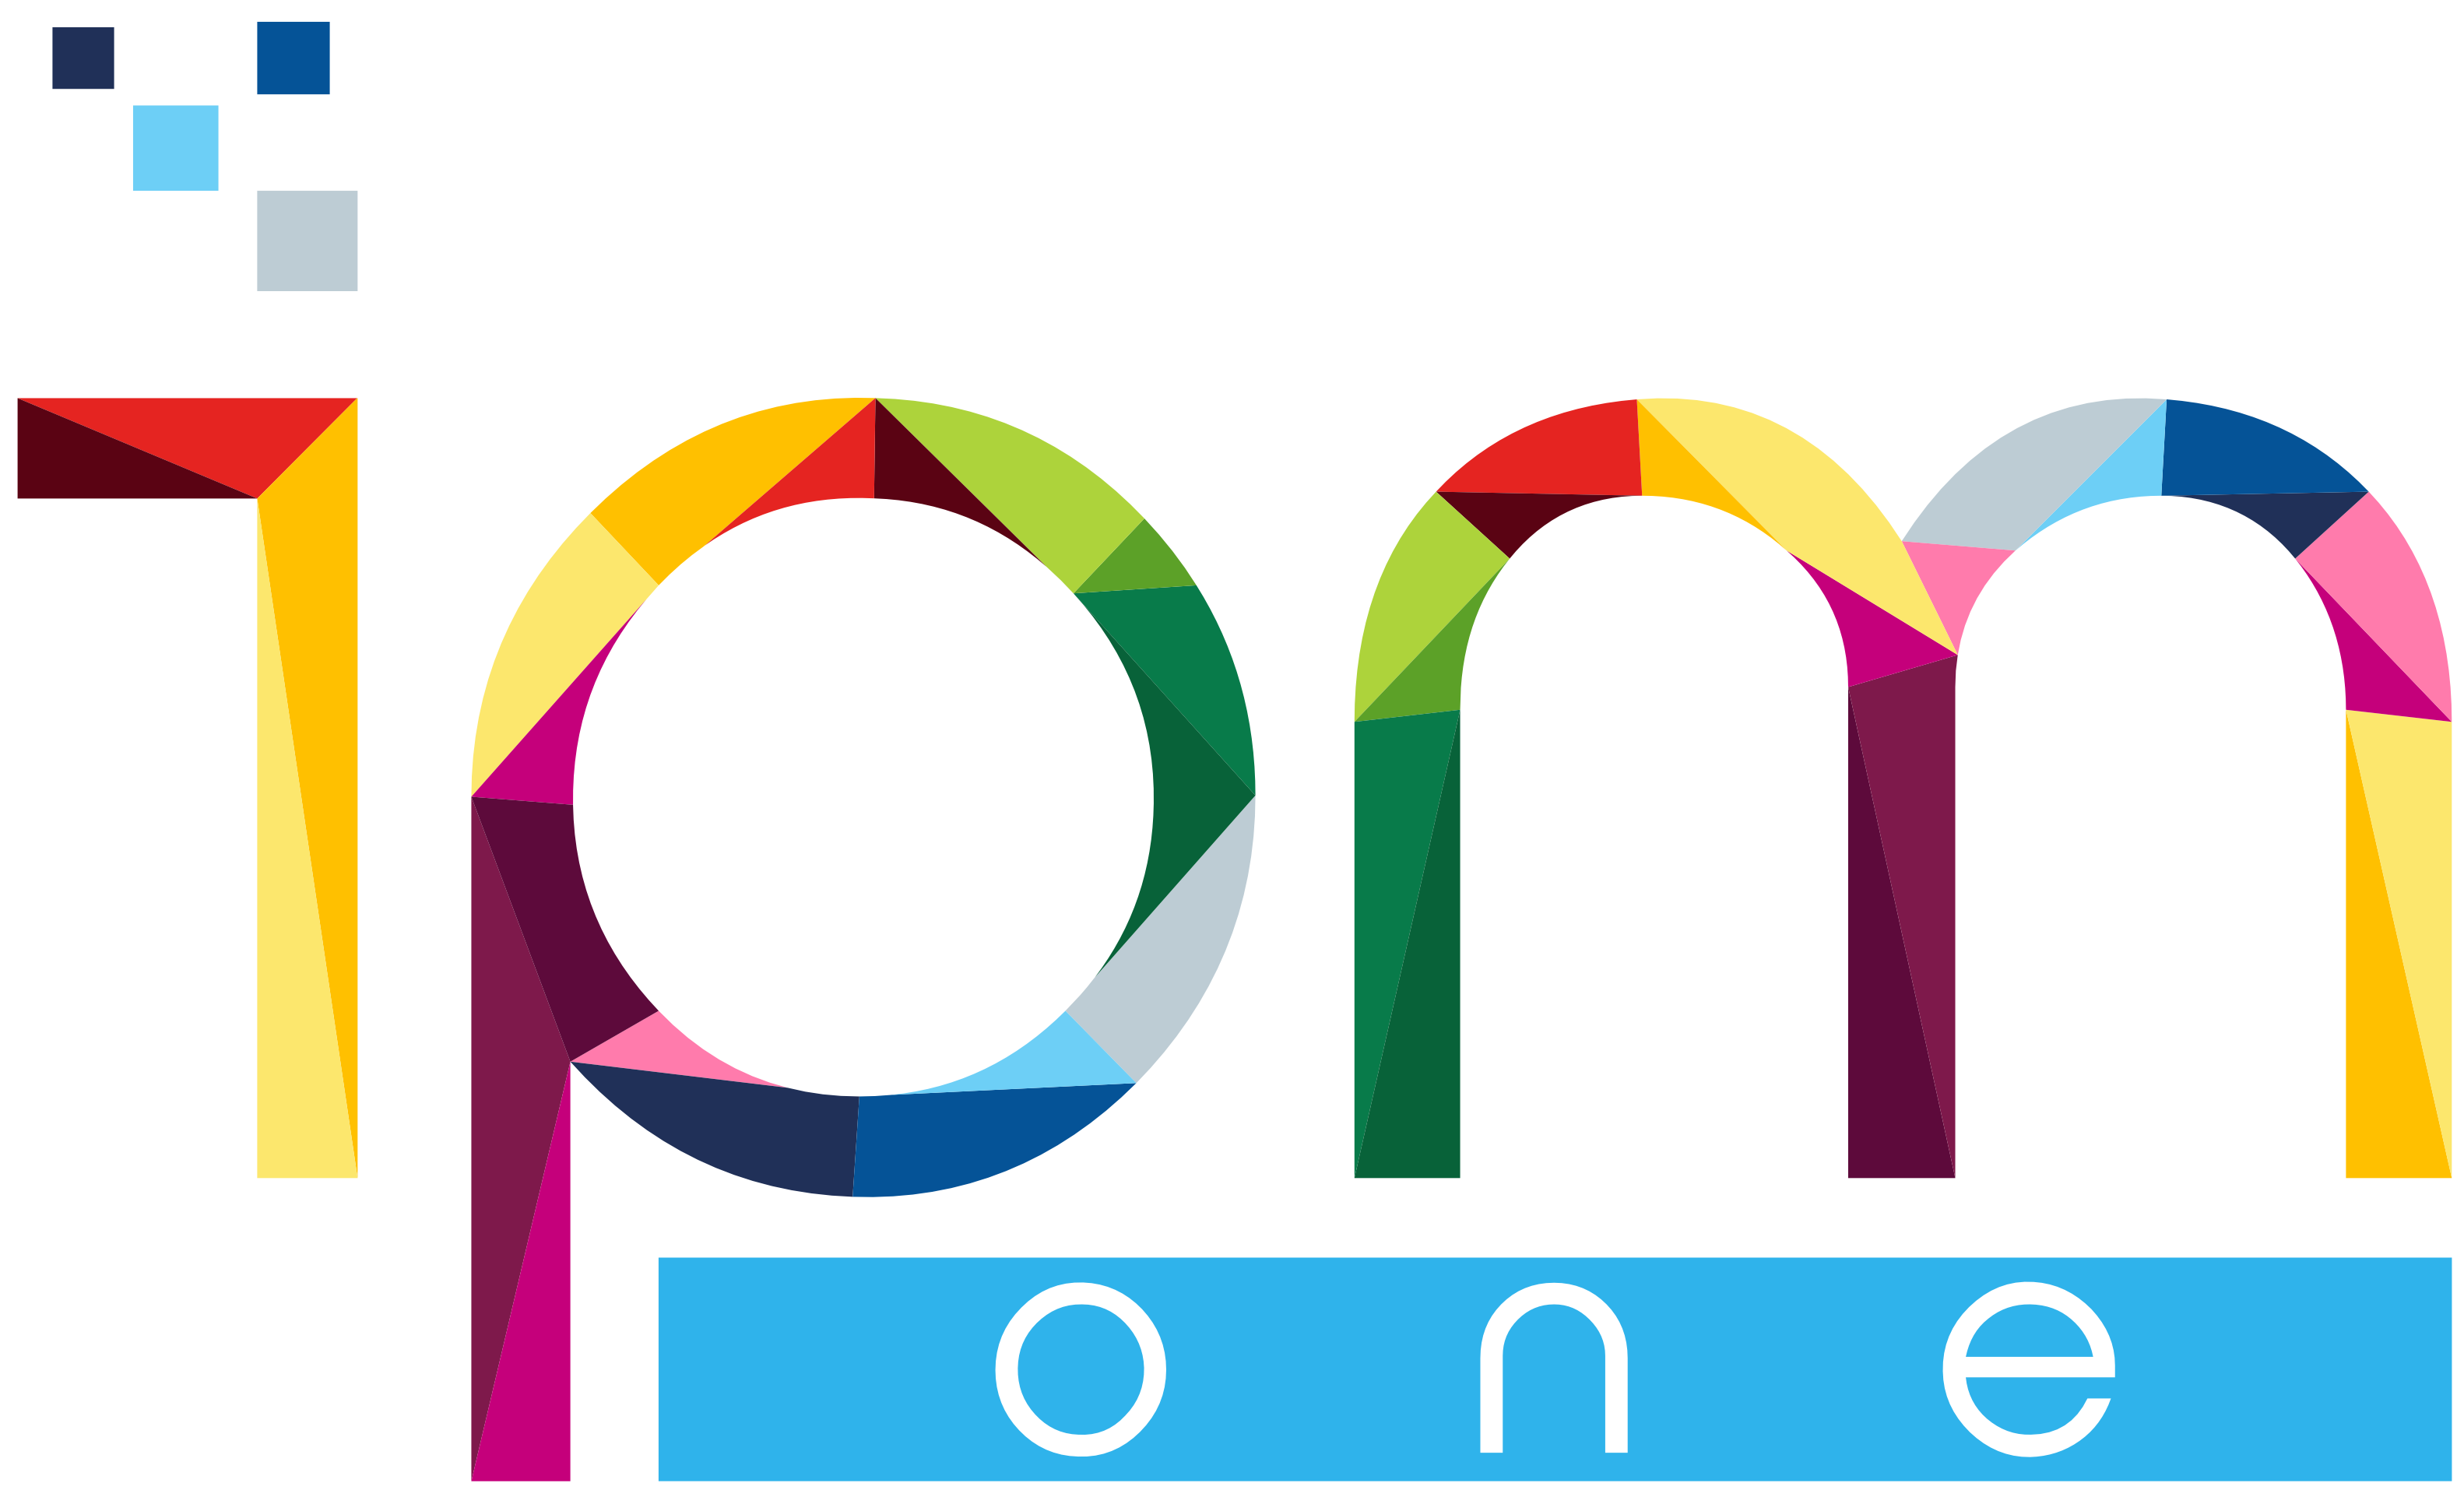 Logo ipm transparent